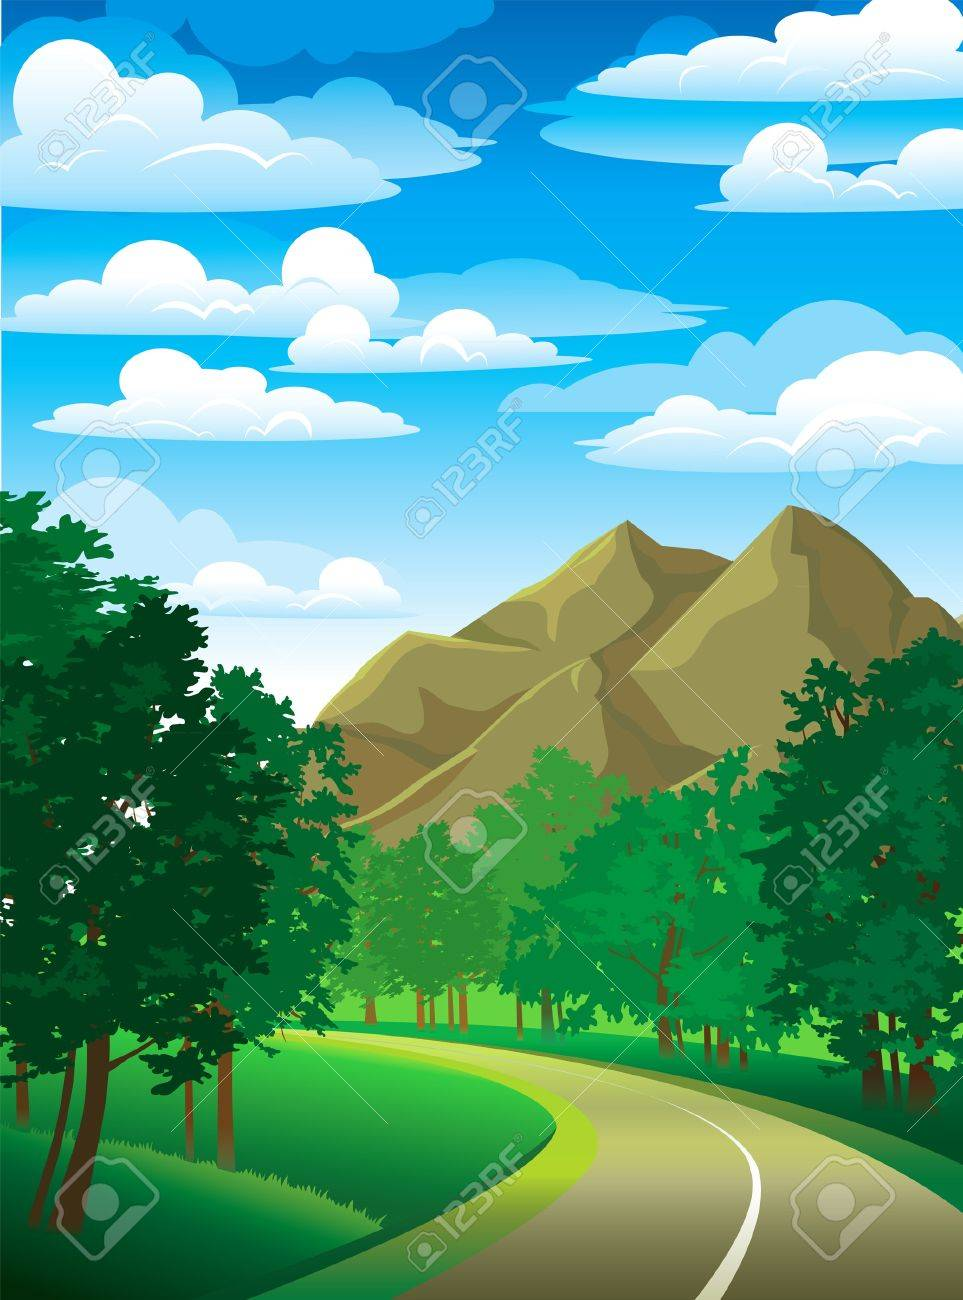 Summer green landscape with road, trees and mountain on a cloudy sky Stock Vector - 12942101